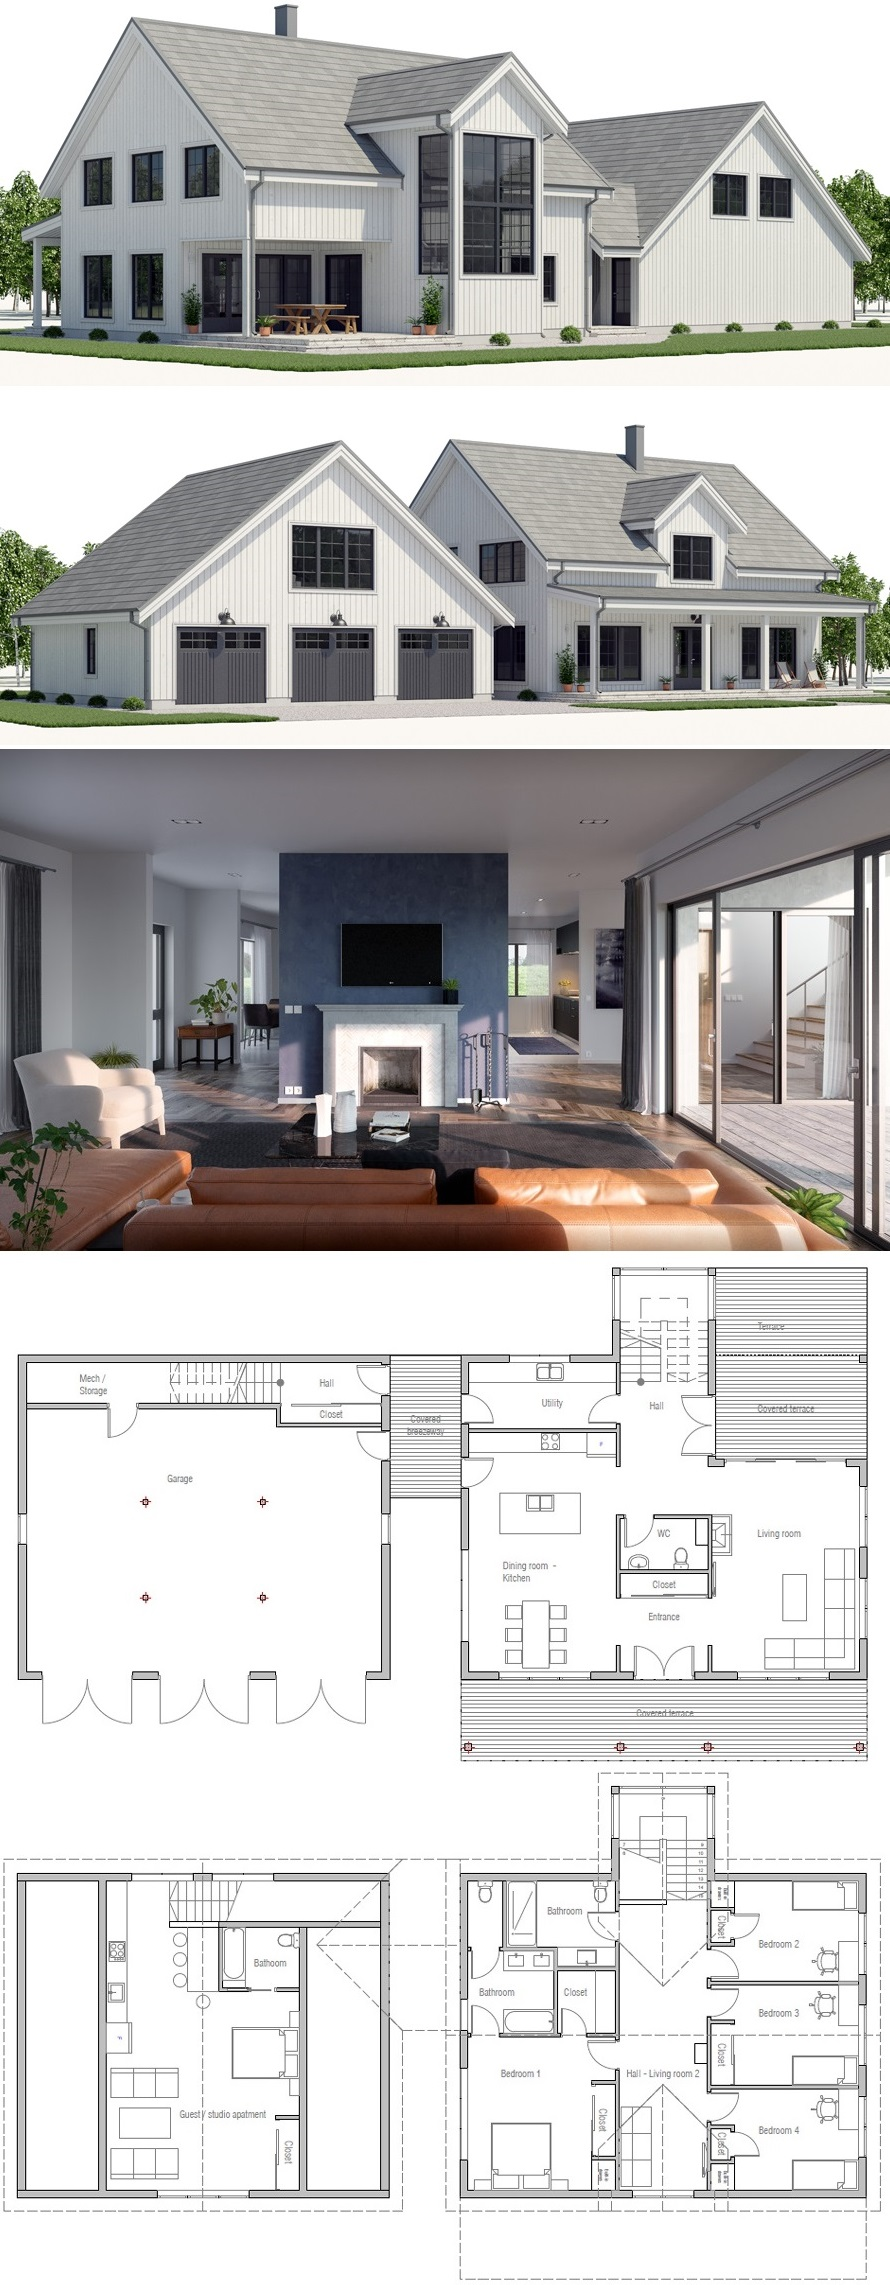 Interior Design Jobs Near Me Entry Level - Home And ...